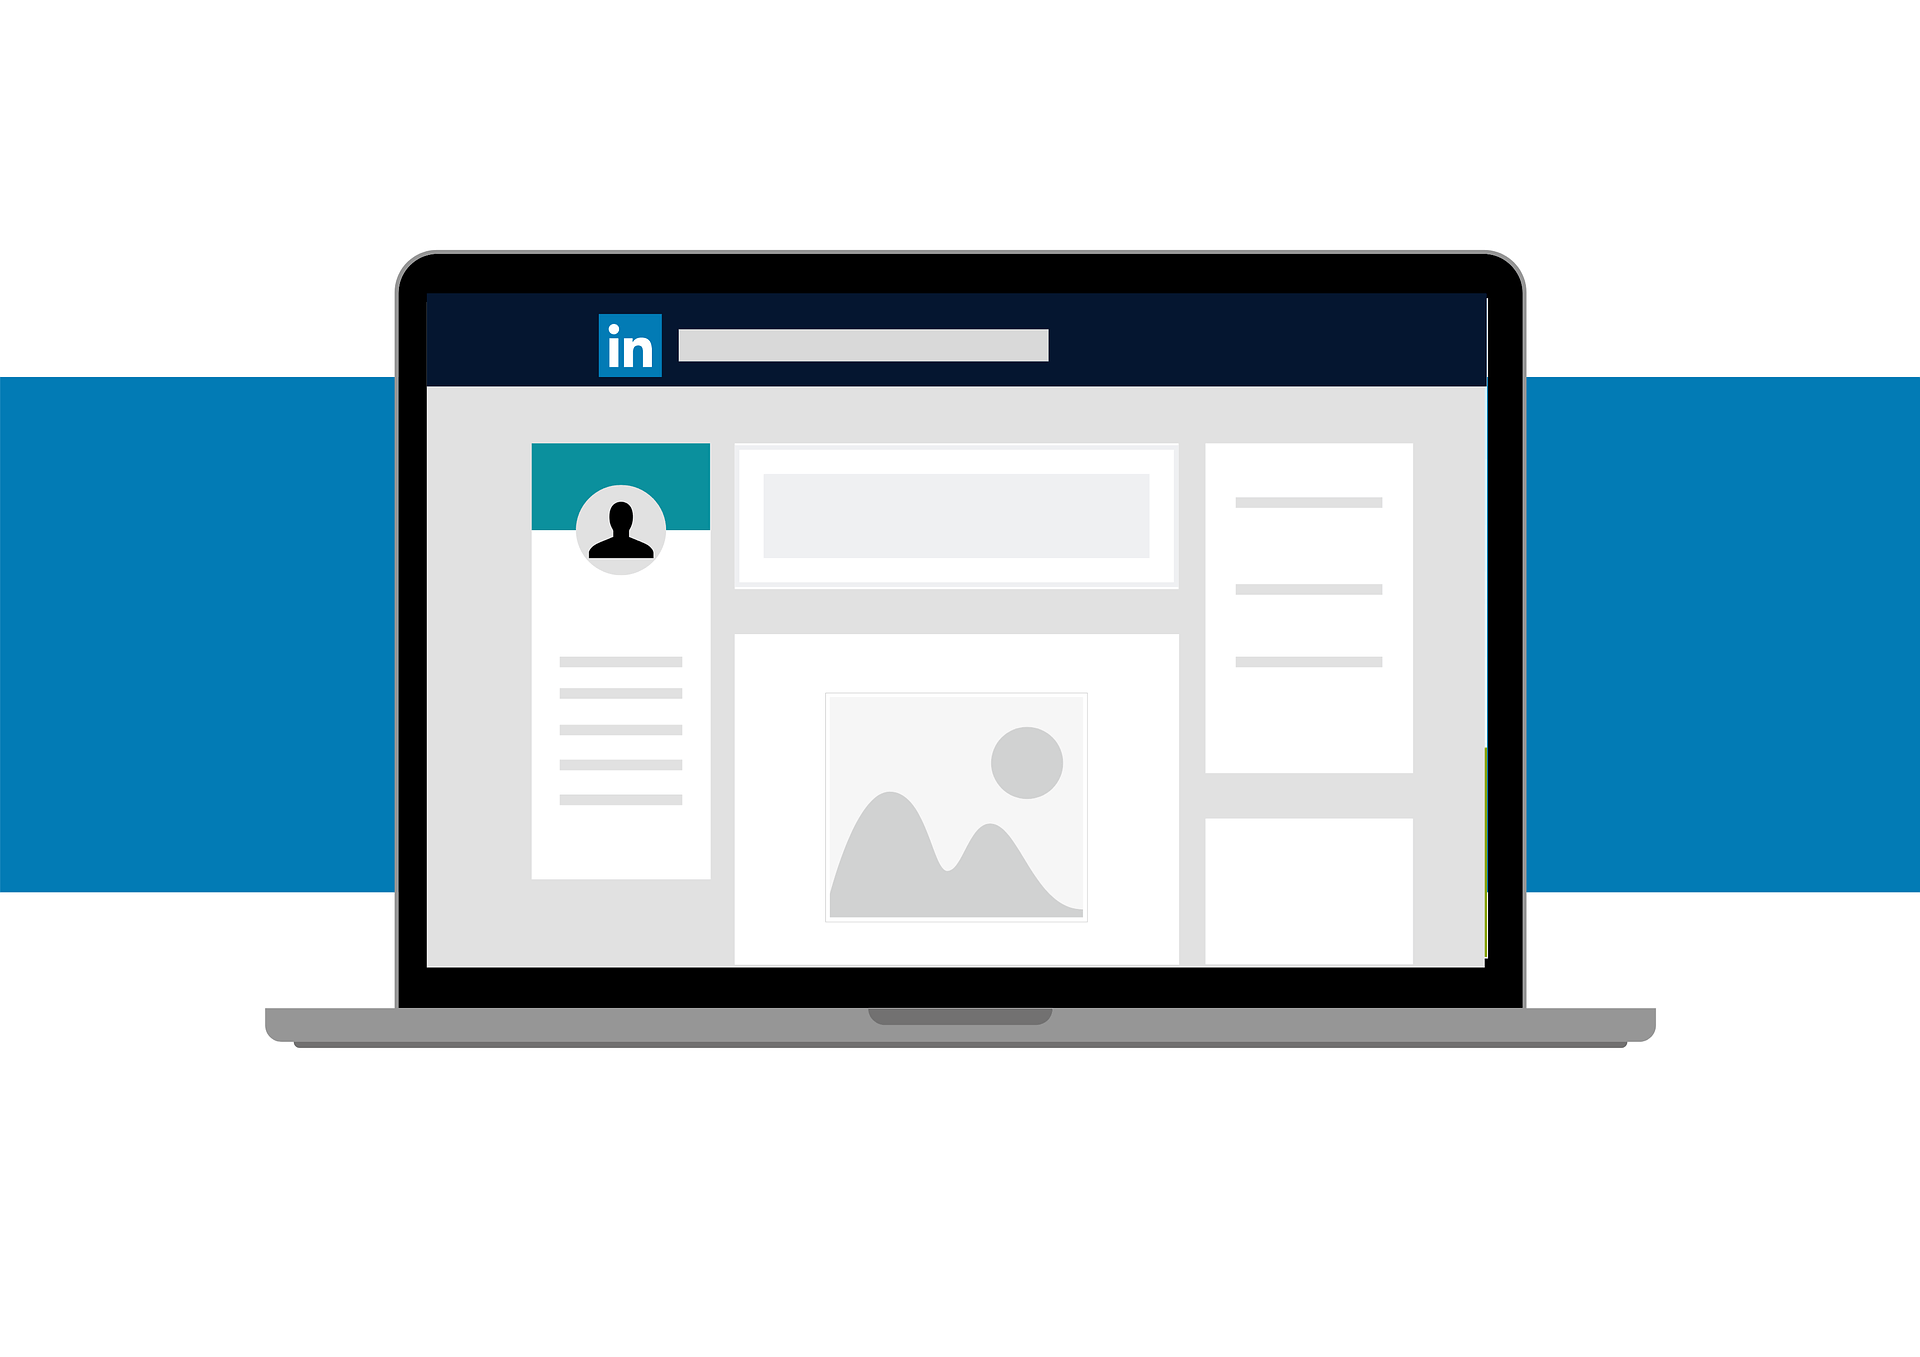 LinkedIn for content ideation